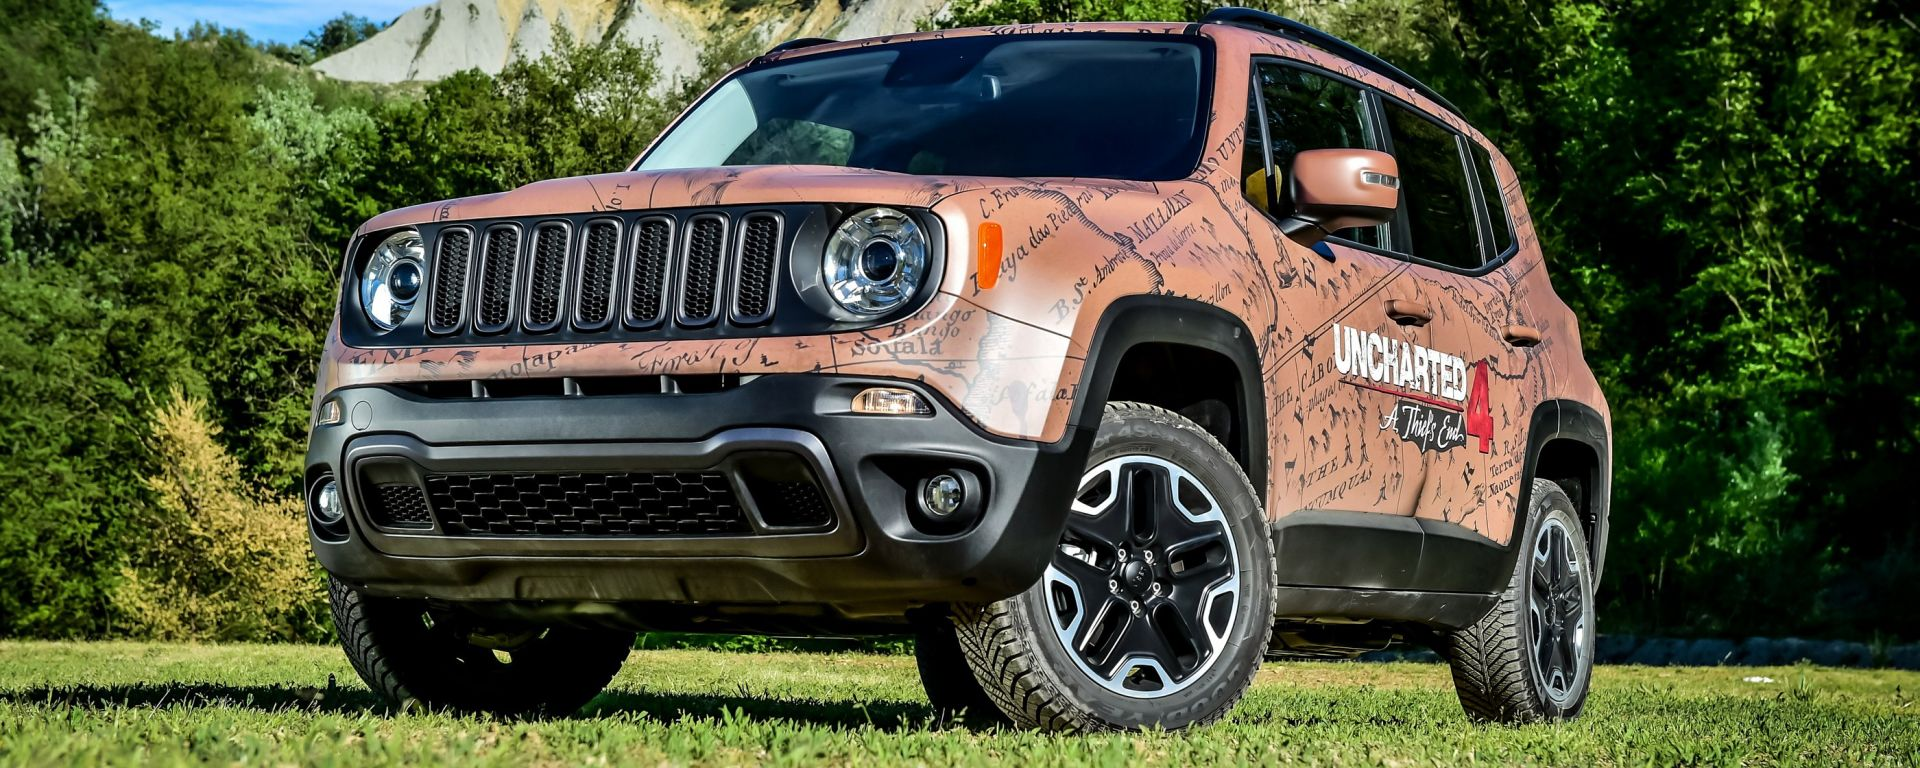 Garage Italia Customs Jeep Renegade Uncharted Edition